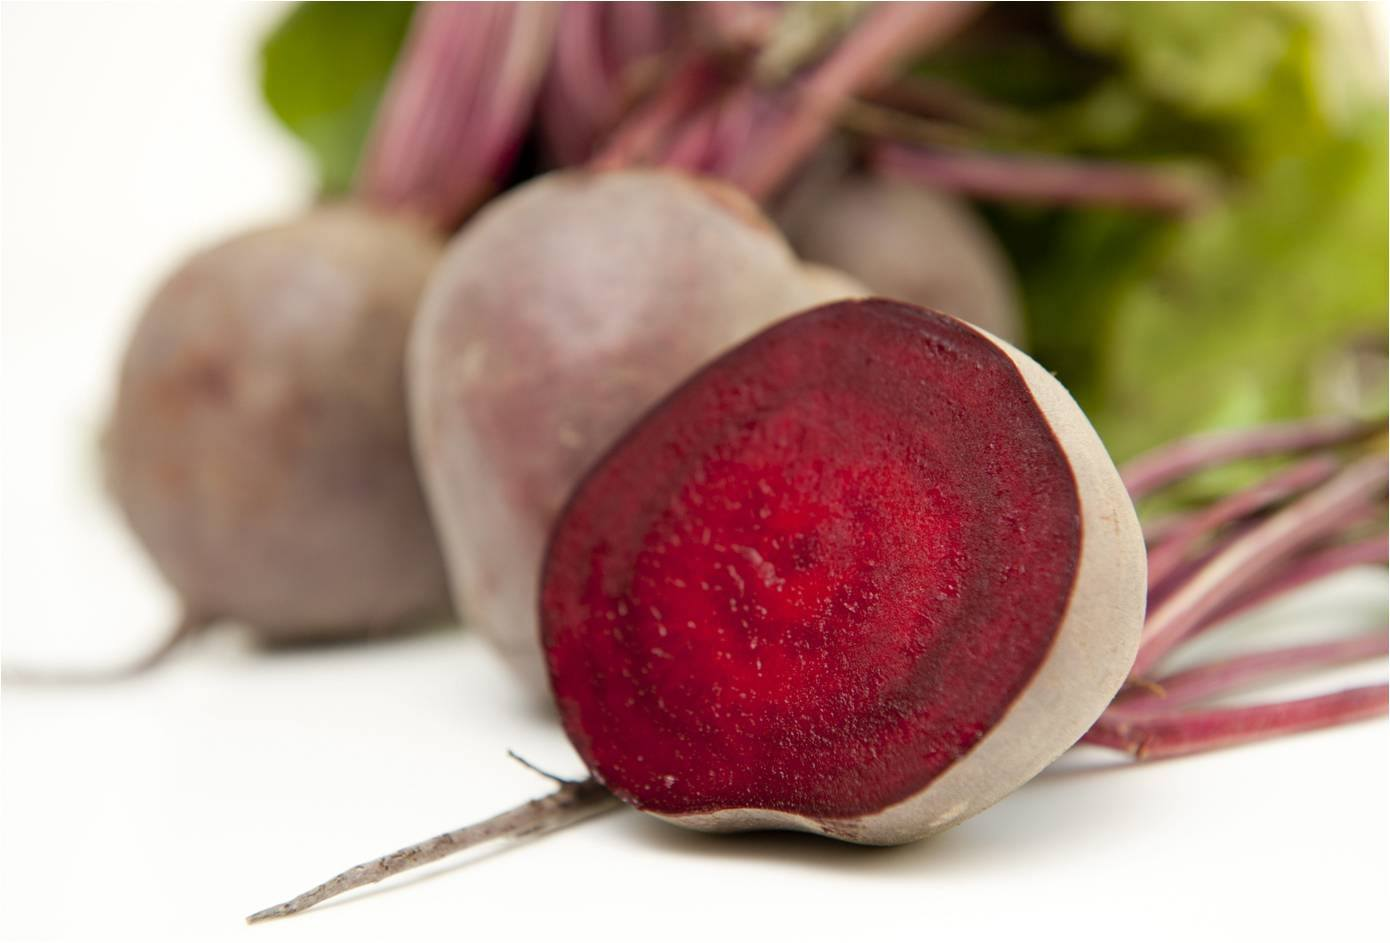 Eat Beetroot for good health